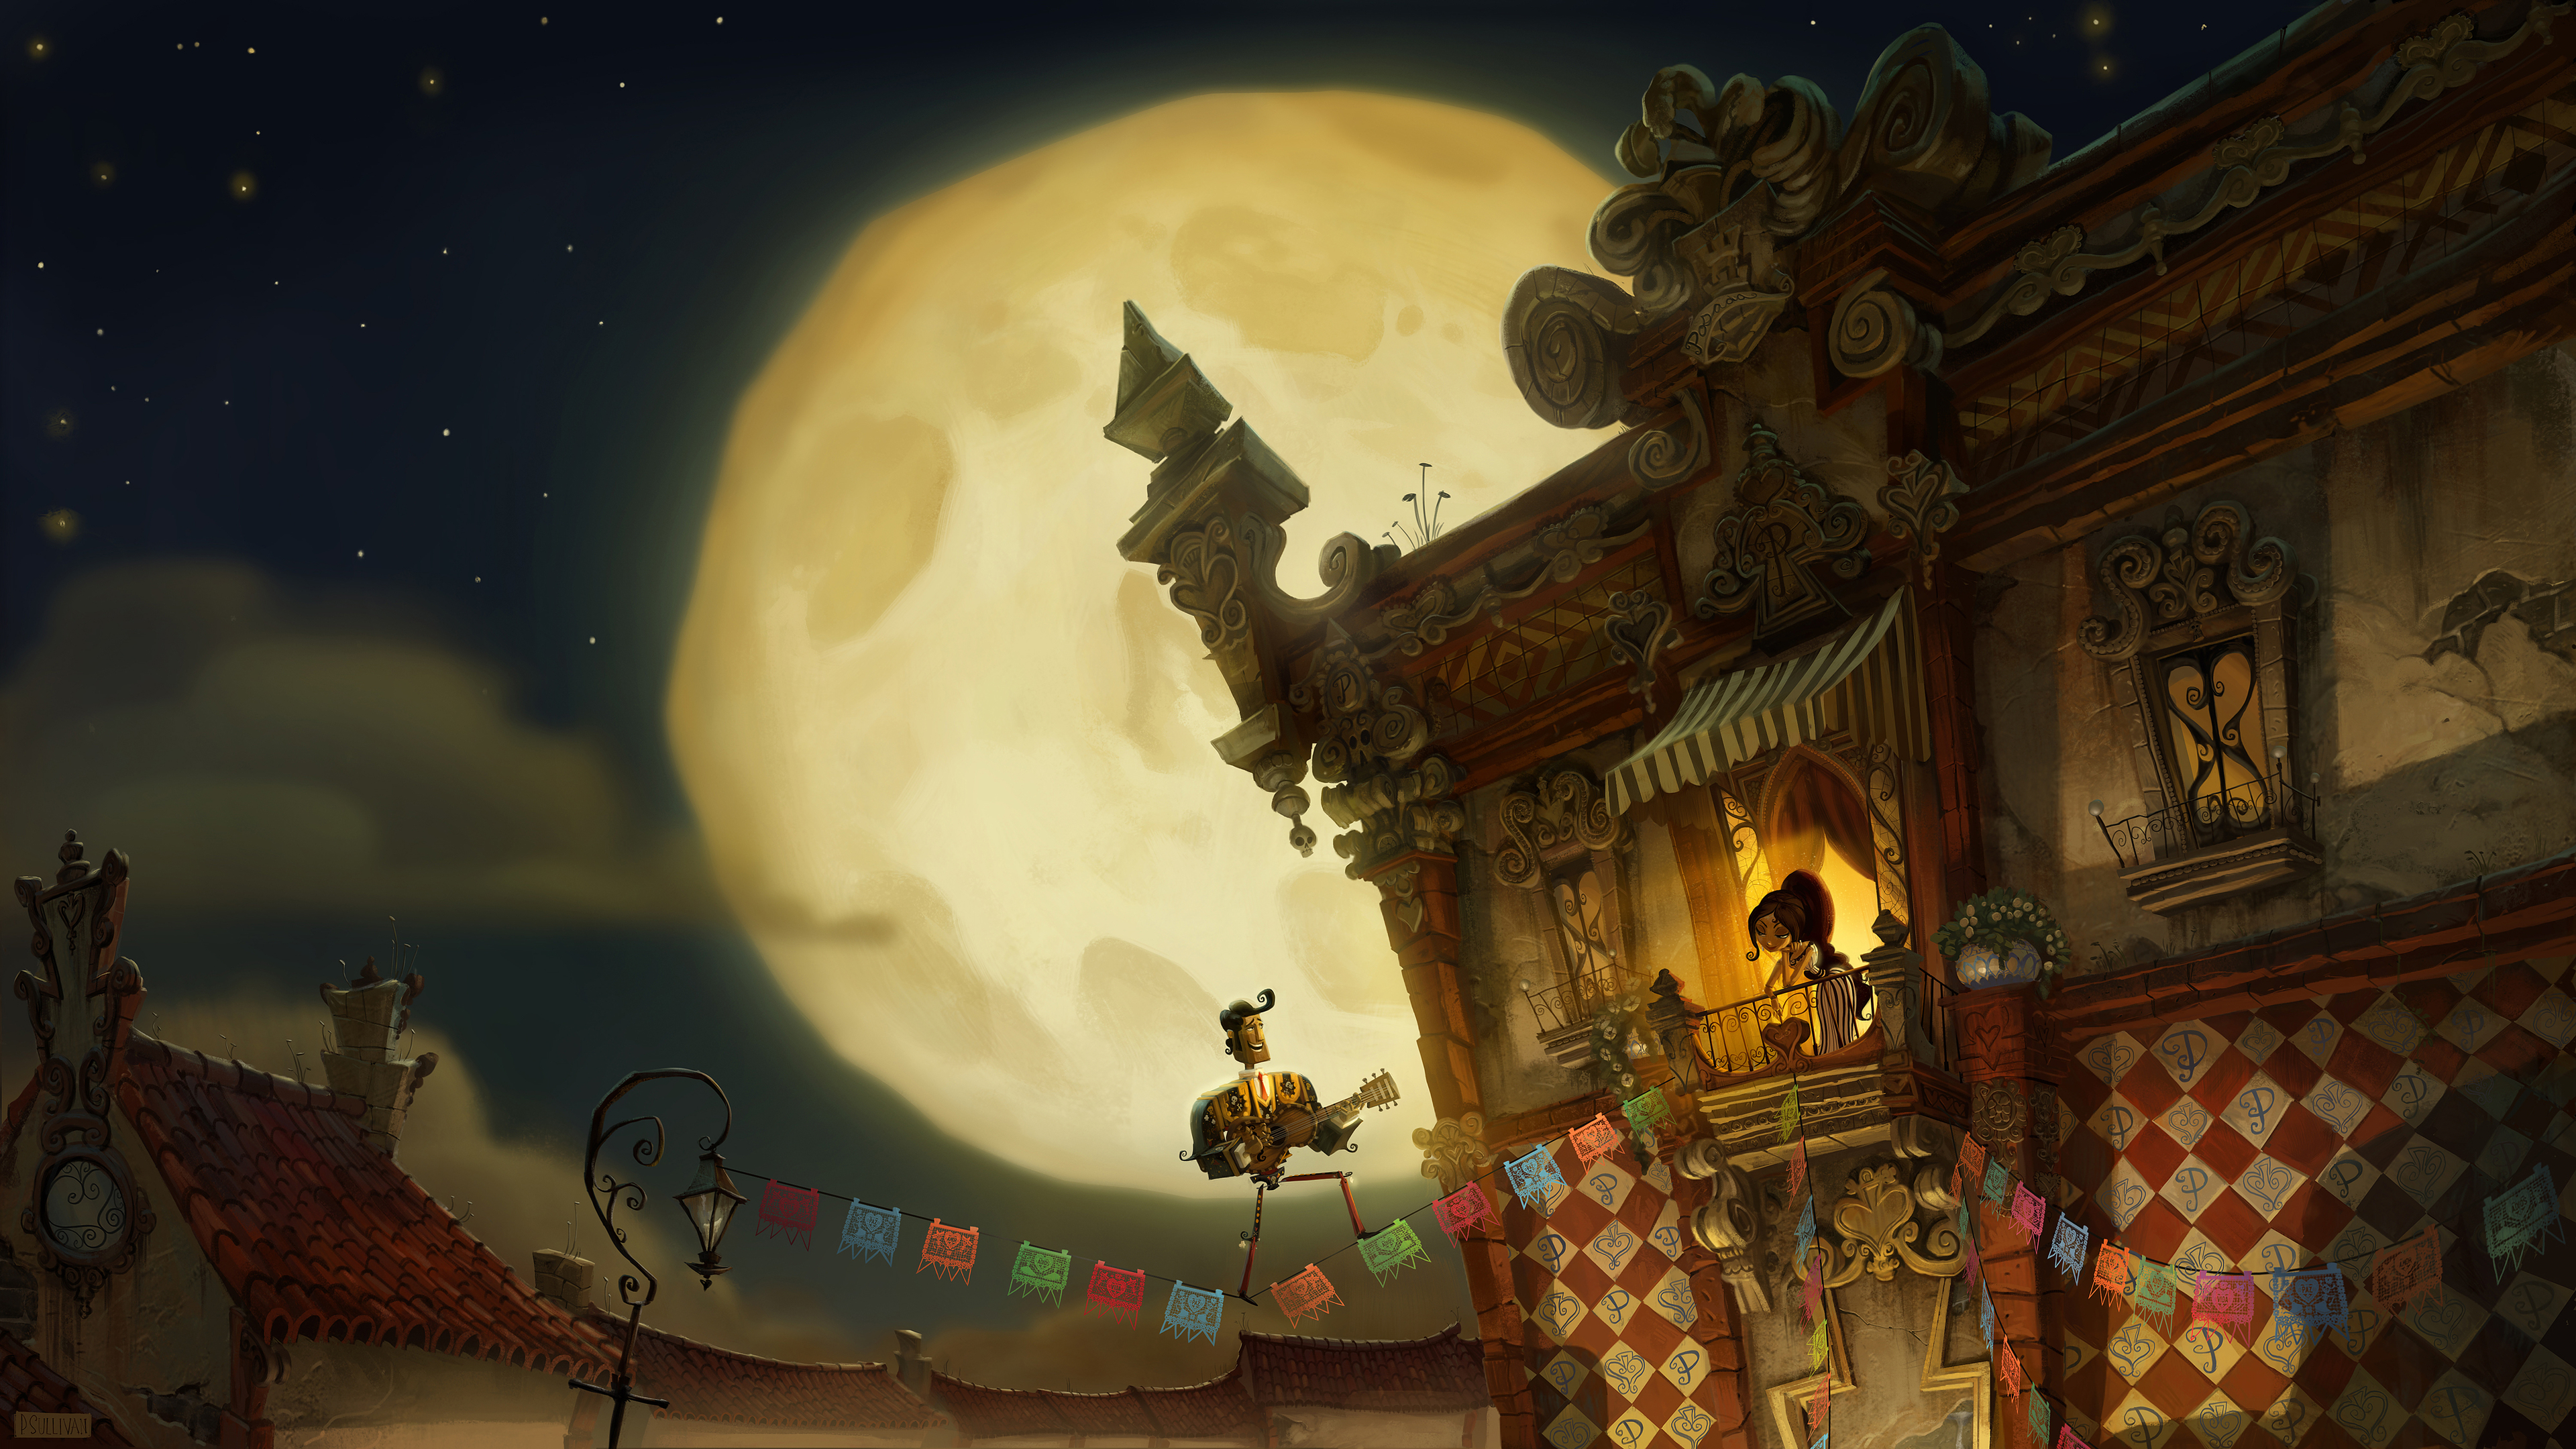 The Book of Life 4k Ultra HD Wallpaper   Background Image ...